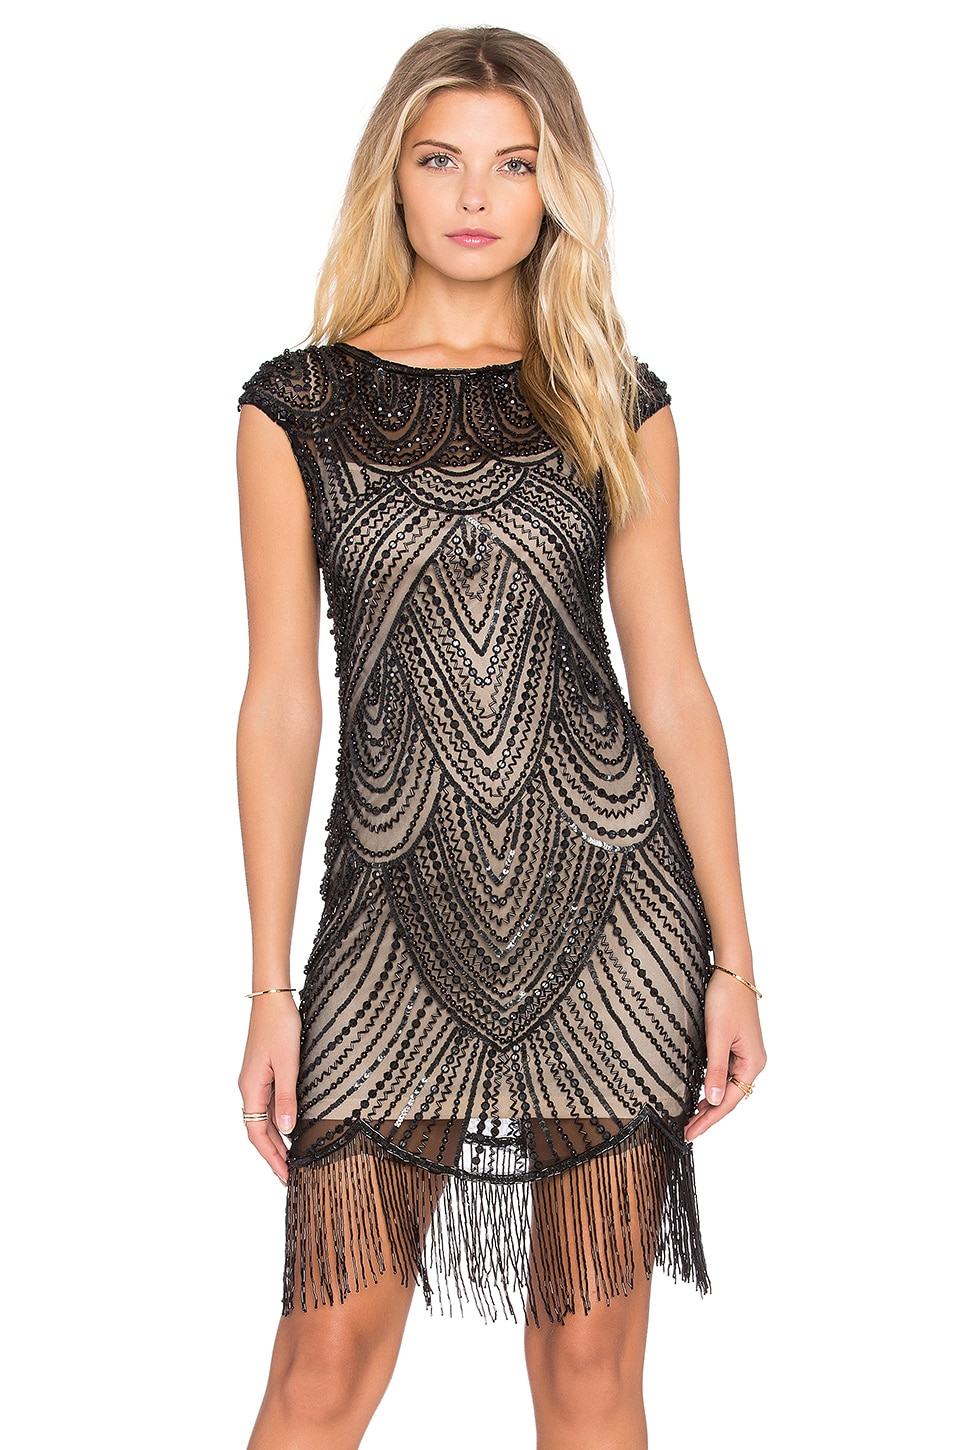 Raga Beaded Dress in Black